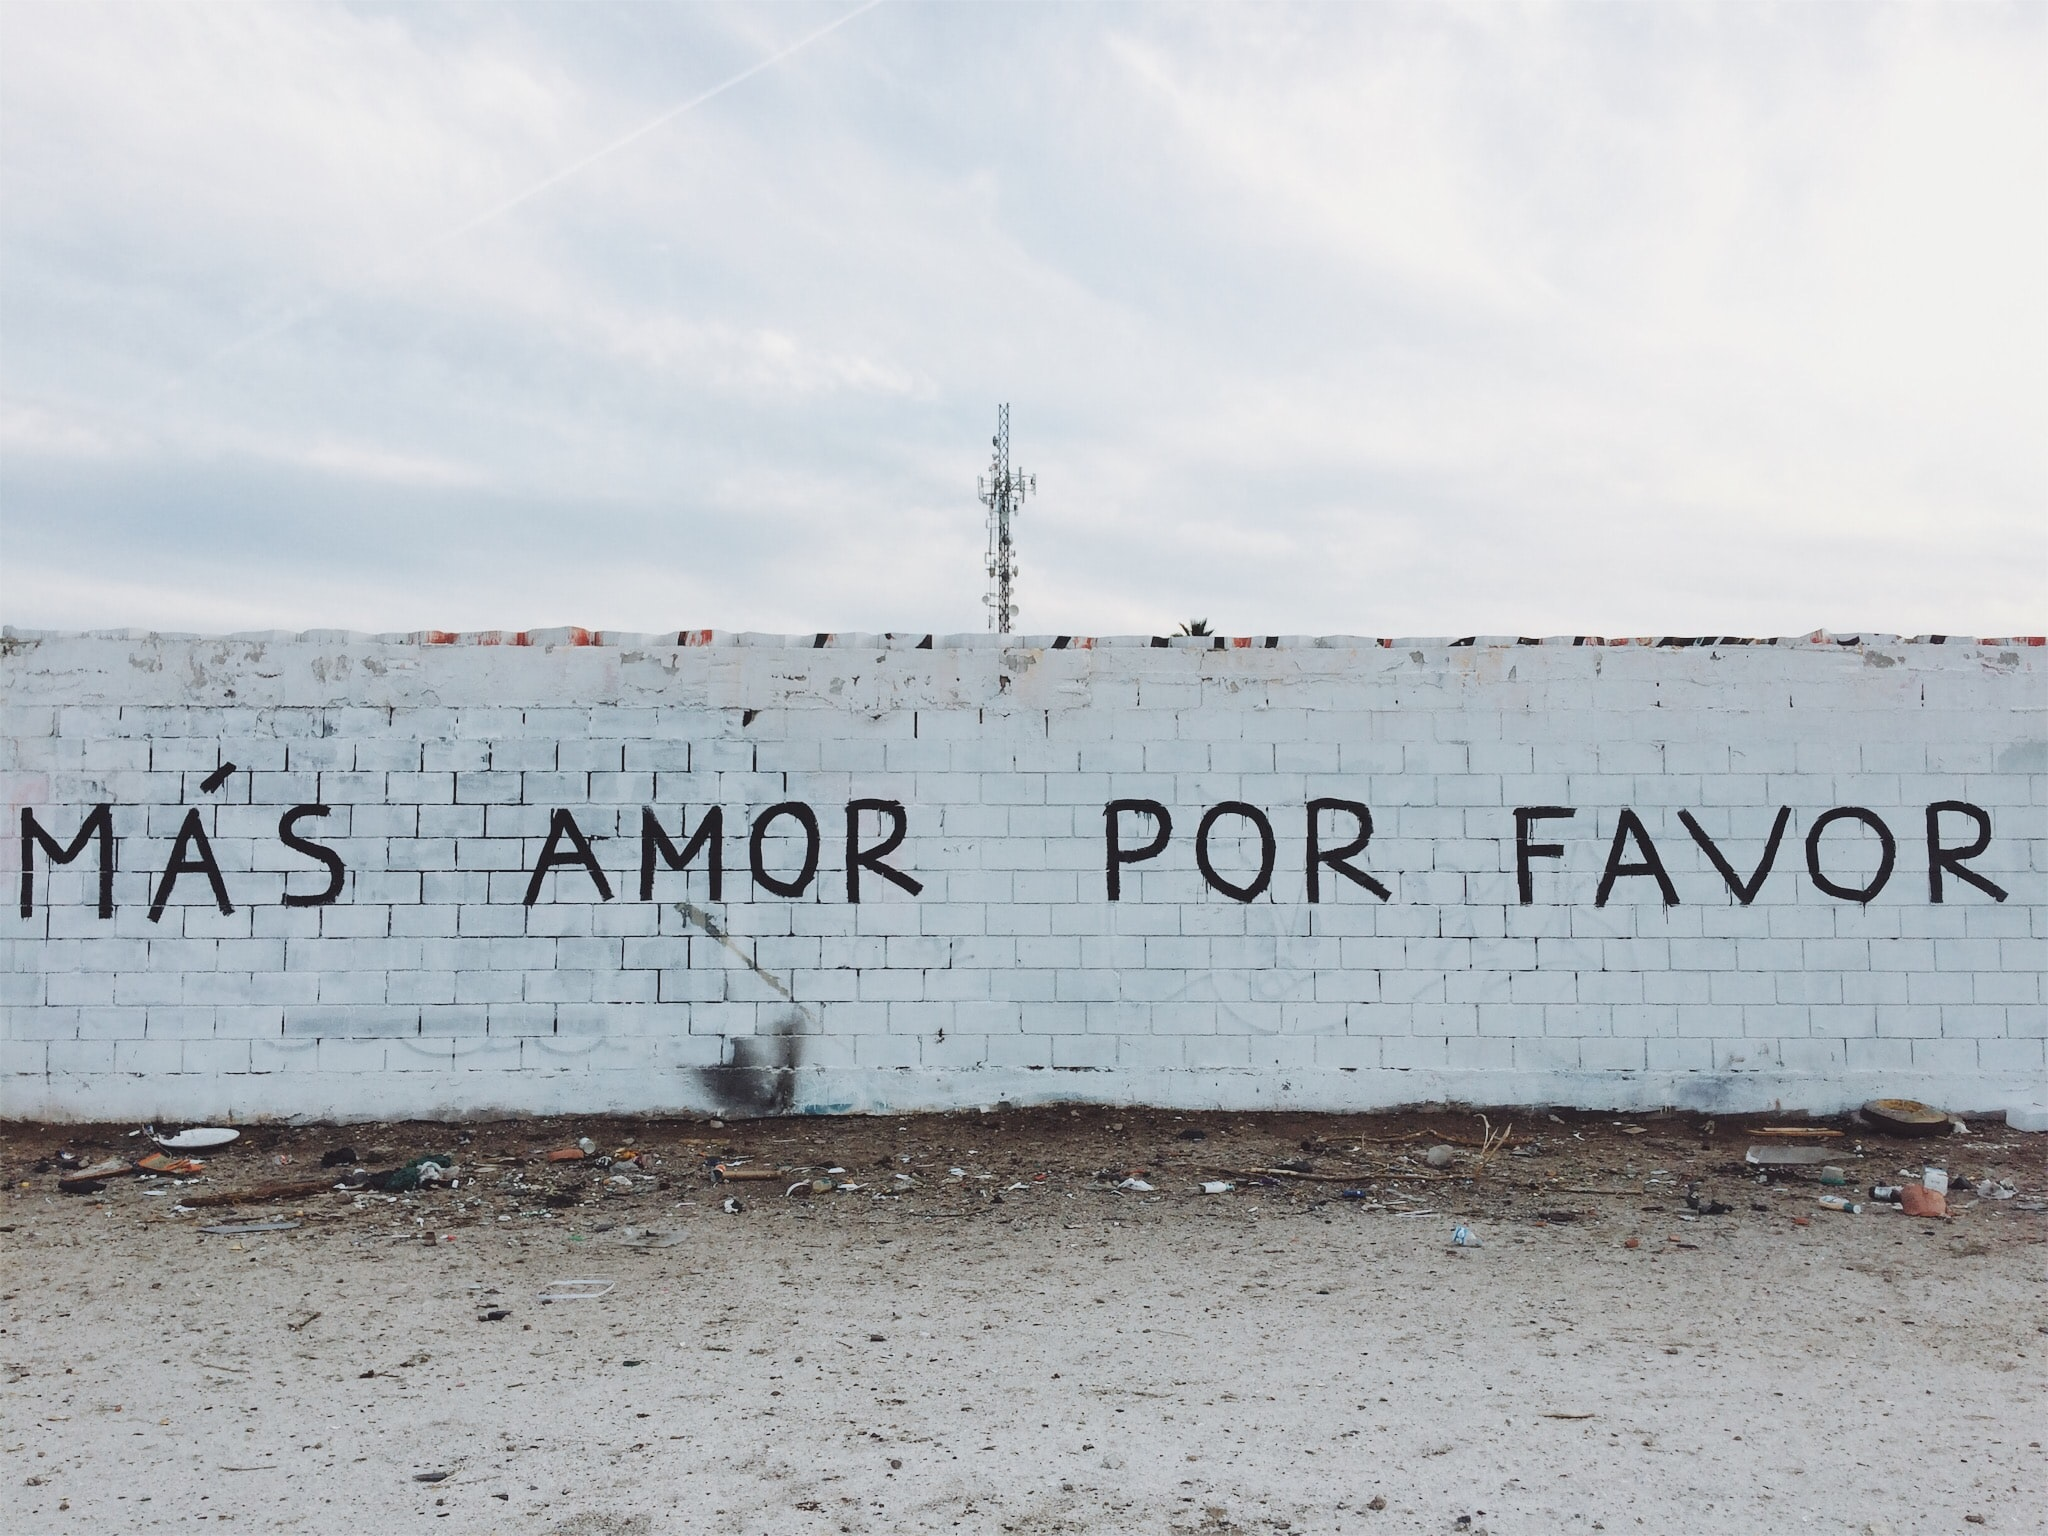 A white brick wall with a painted message in Spanish in Mexicali